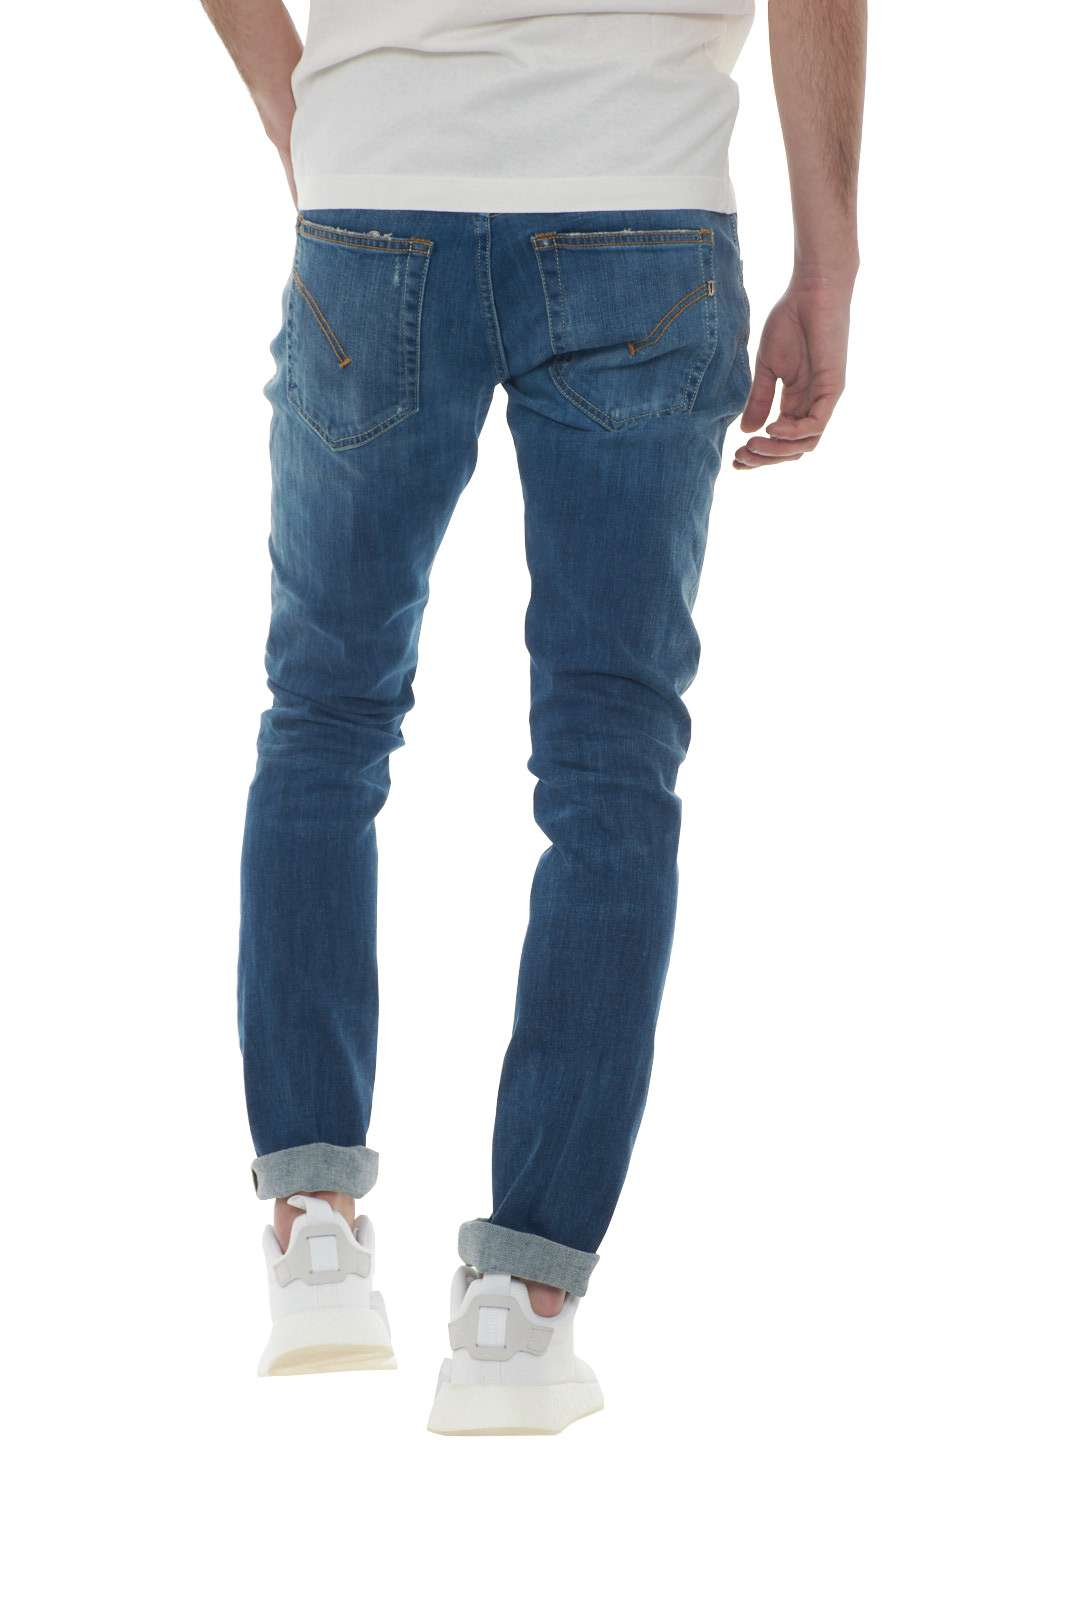 https://www.parmax.com/media/catalog/product/a/i/PE-outlet_parmax-denim-uomo-Dondup-UP424%20DS0257U-C.jpg